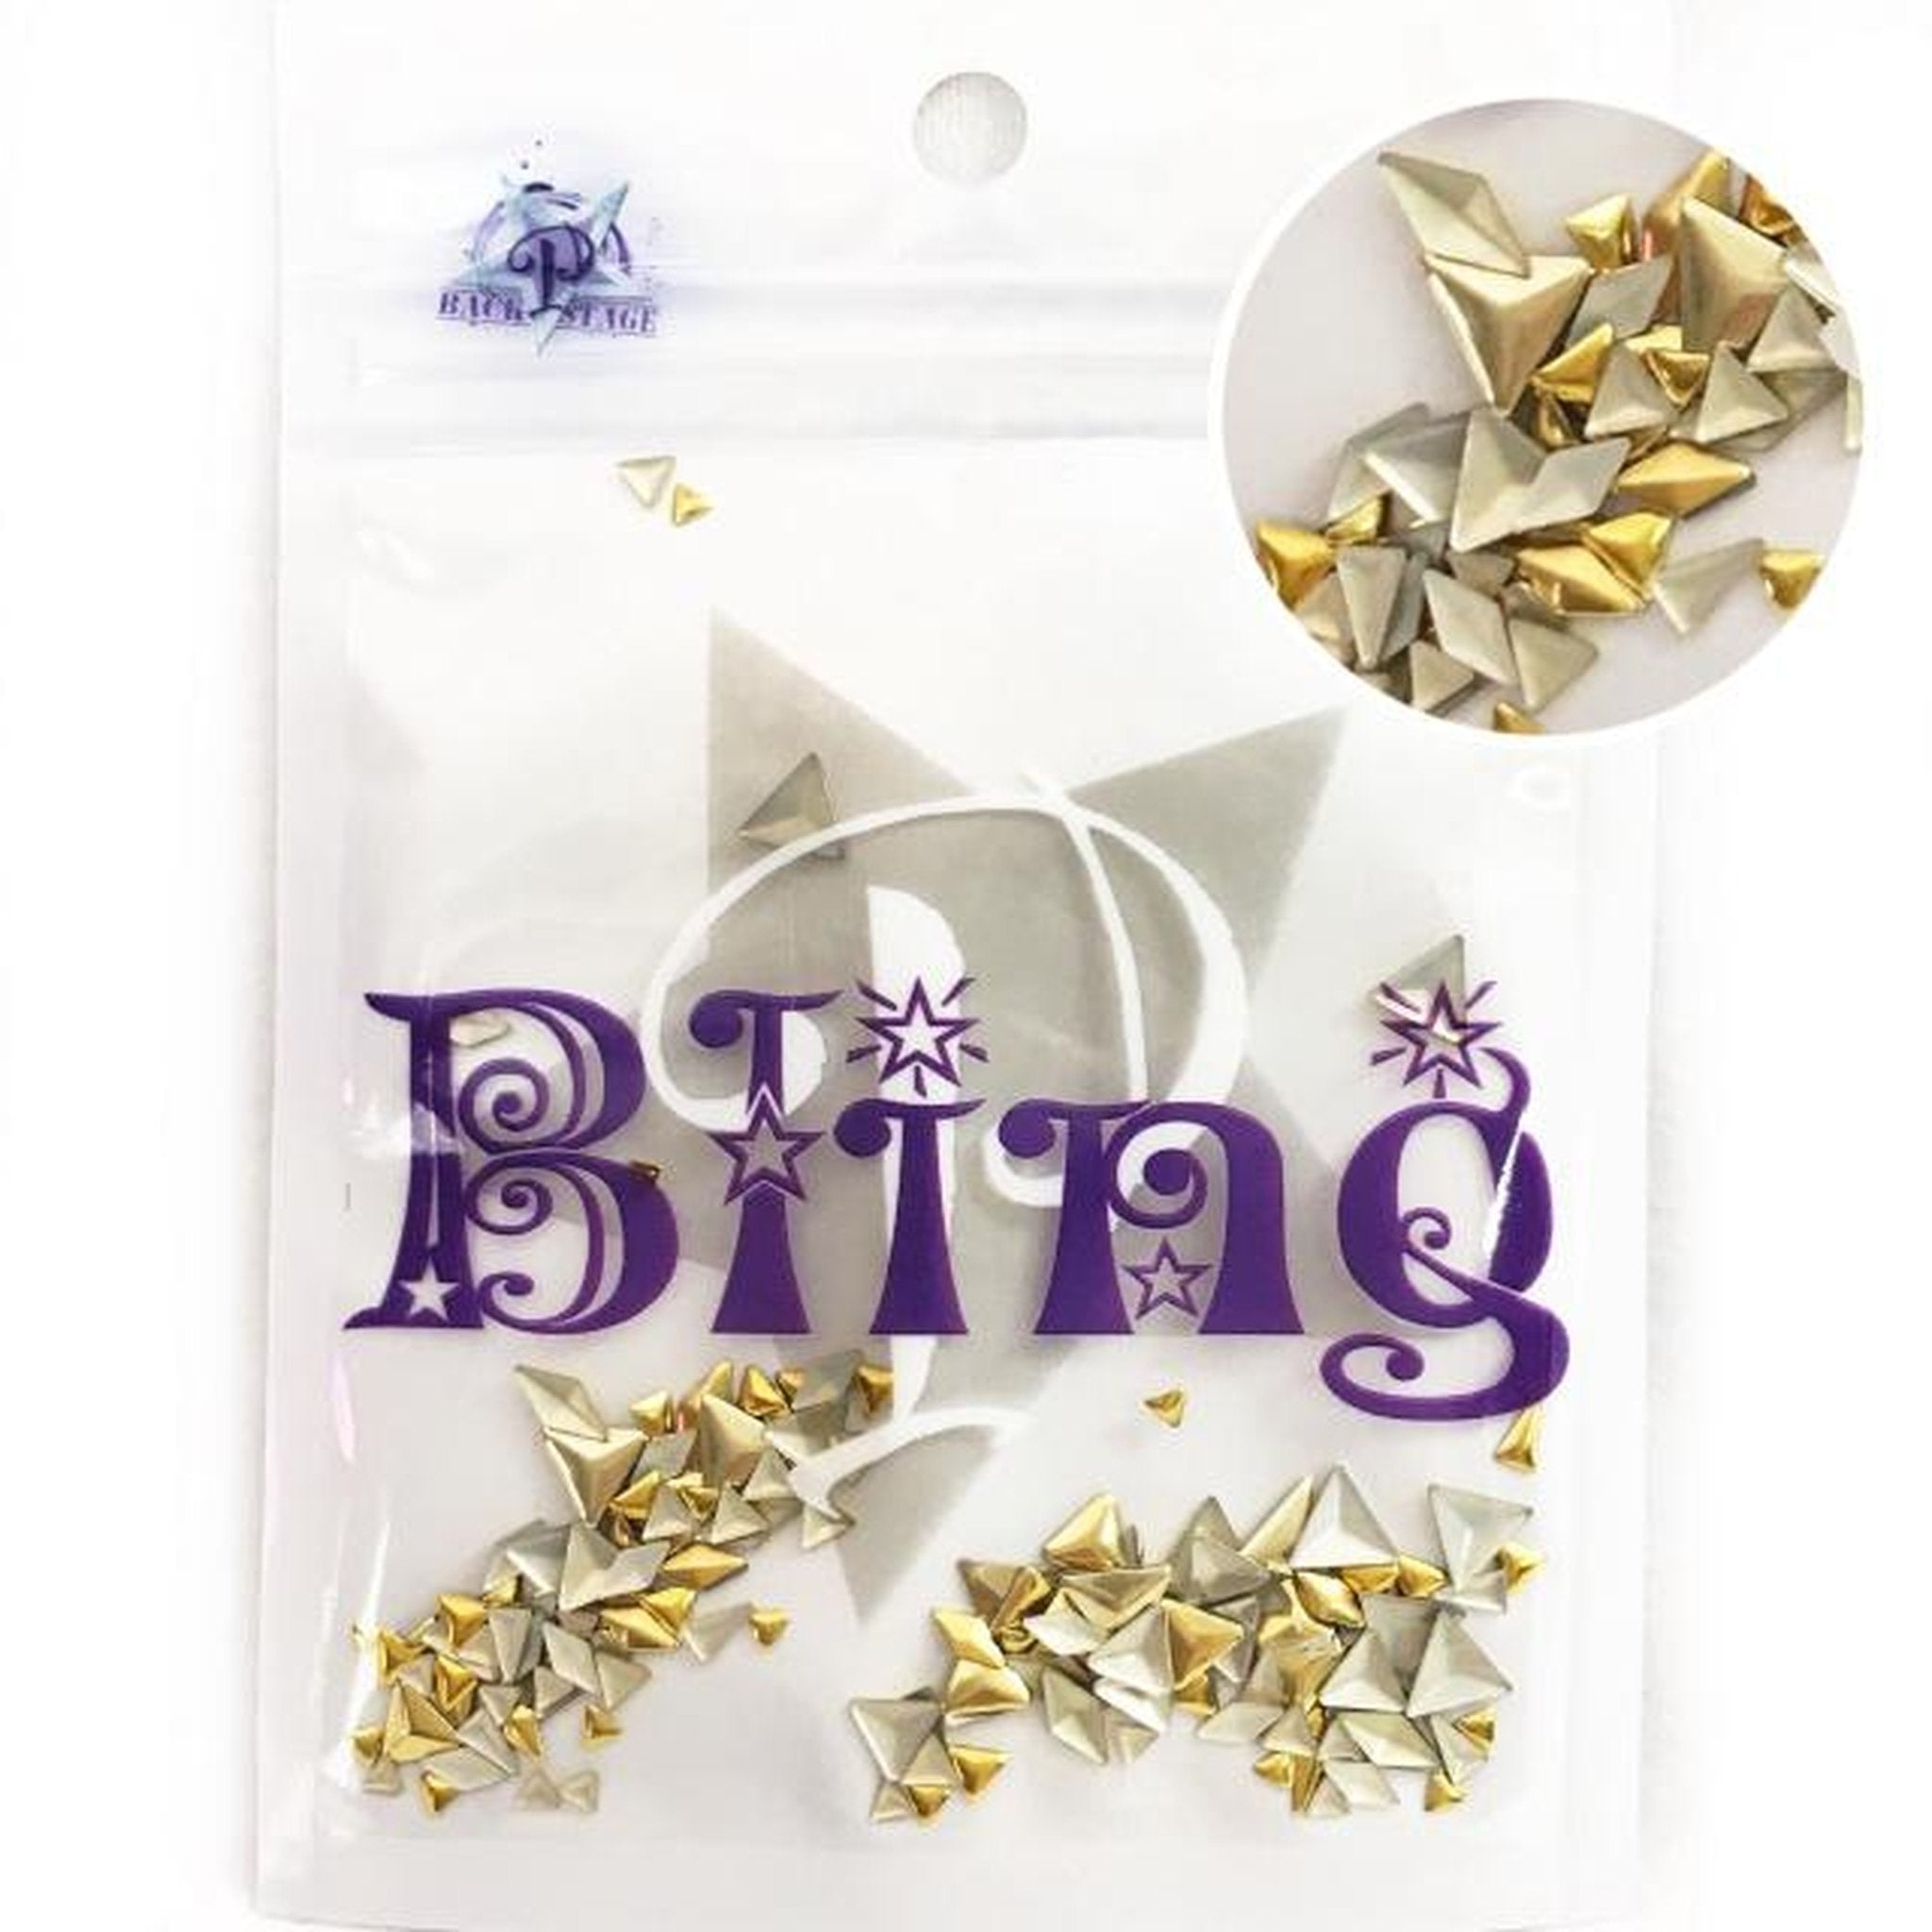 Profiles Bling - Gold Trangles, Arrows, Diamond shapes-Gel Essentialz